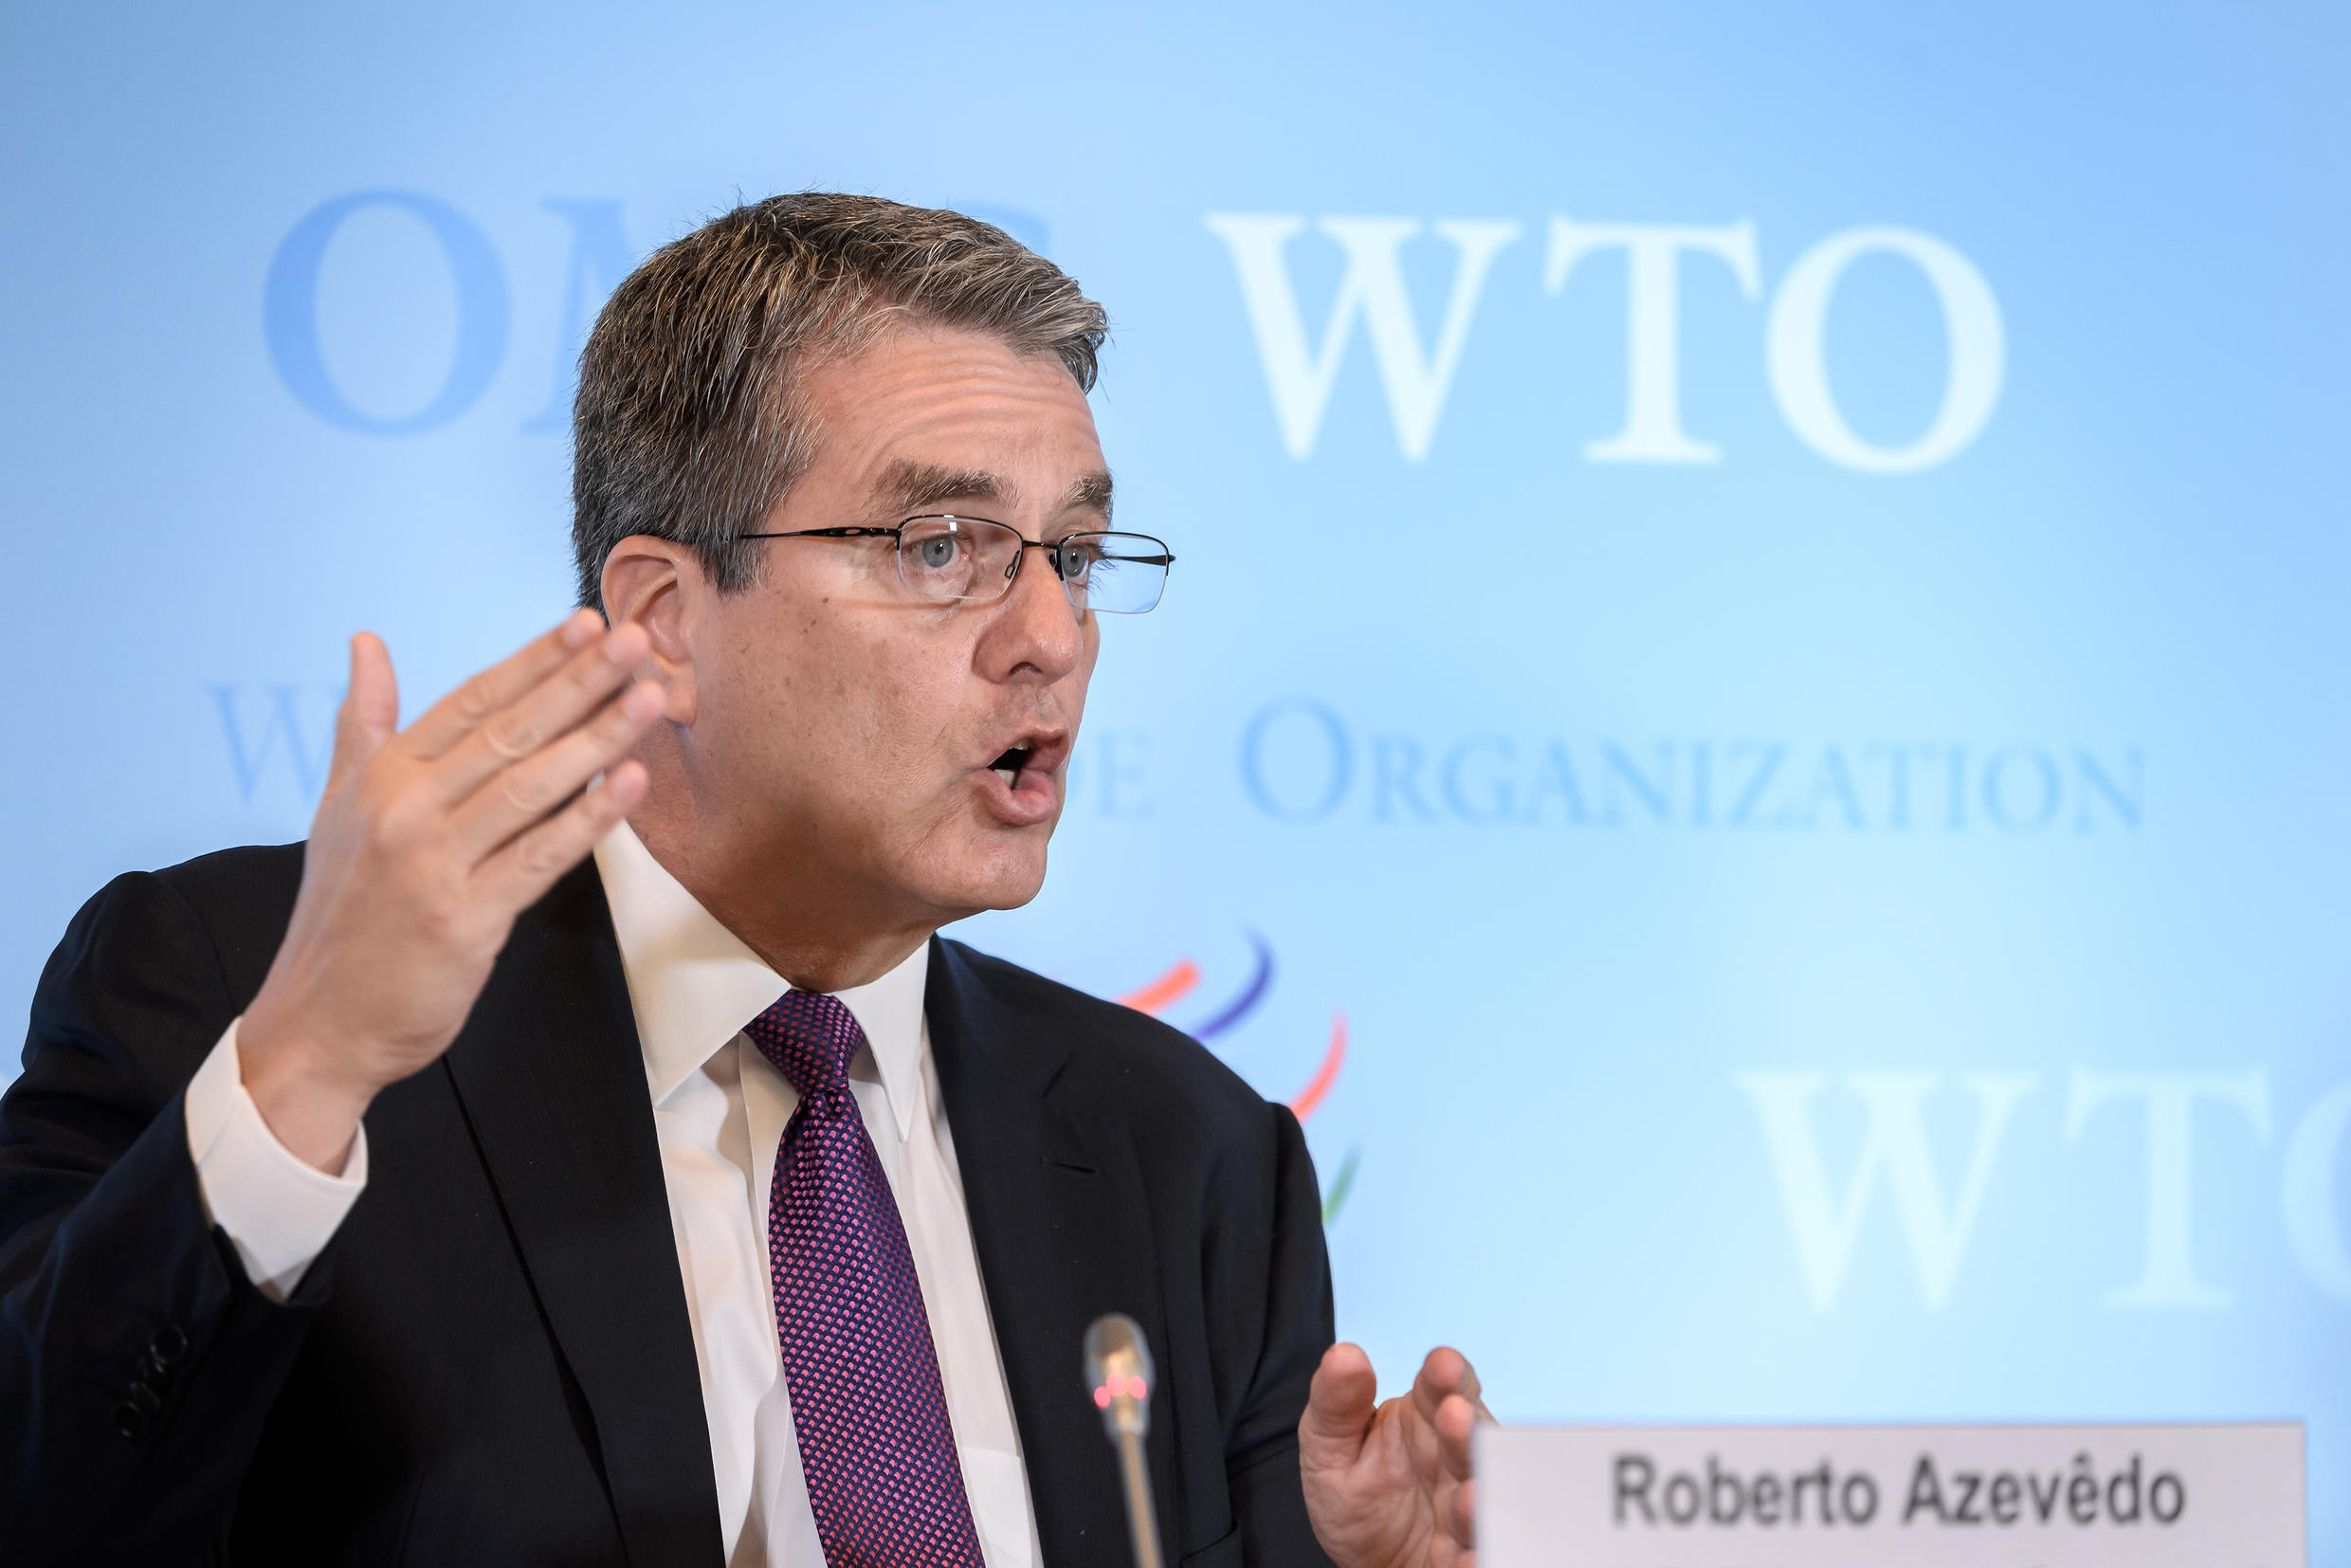 Outgoing World Trade Organization (WTO) director-general Roberto Azevedo advised against a 'big-bang' reform of the troubled trade body